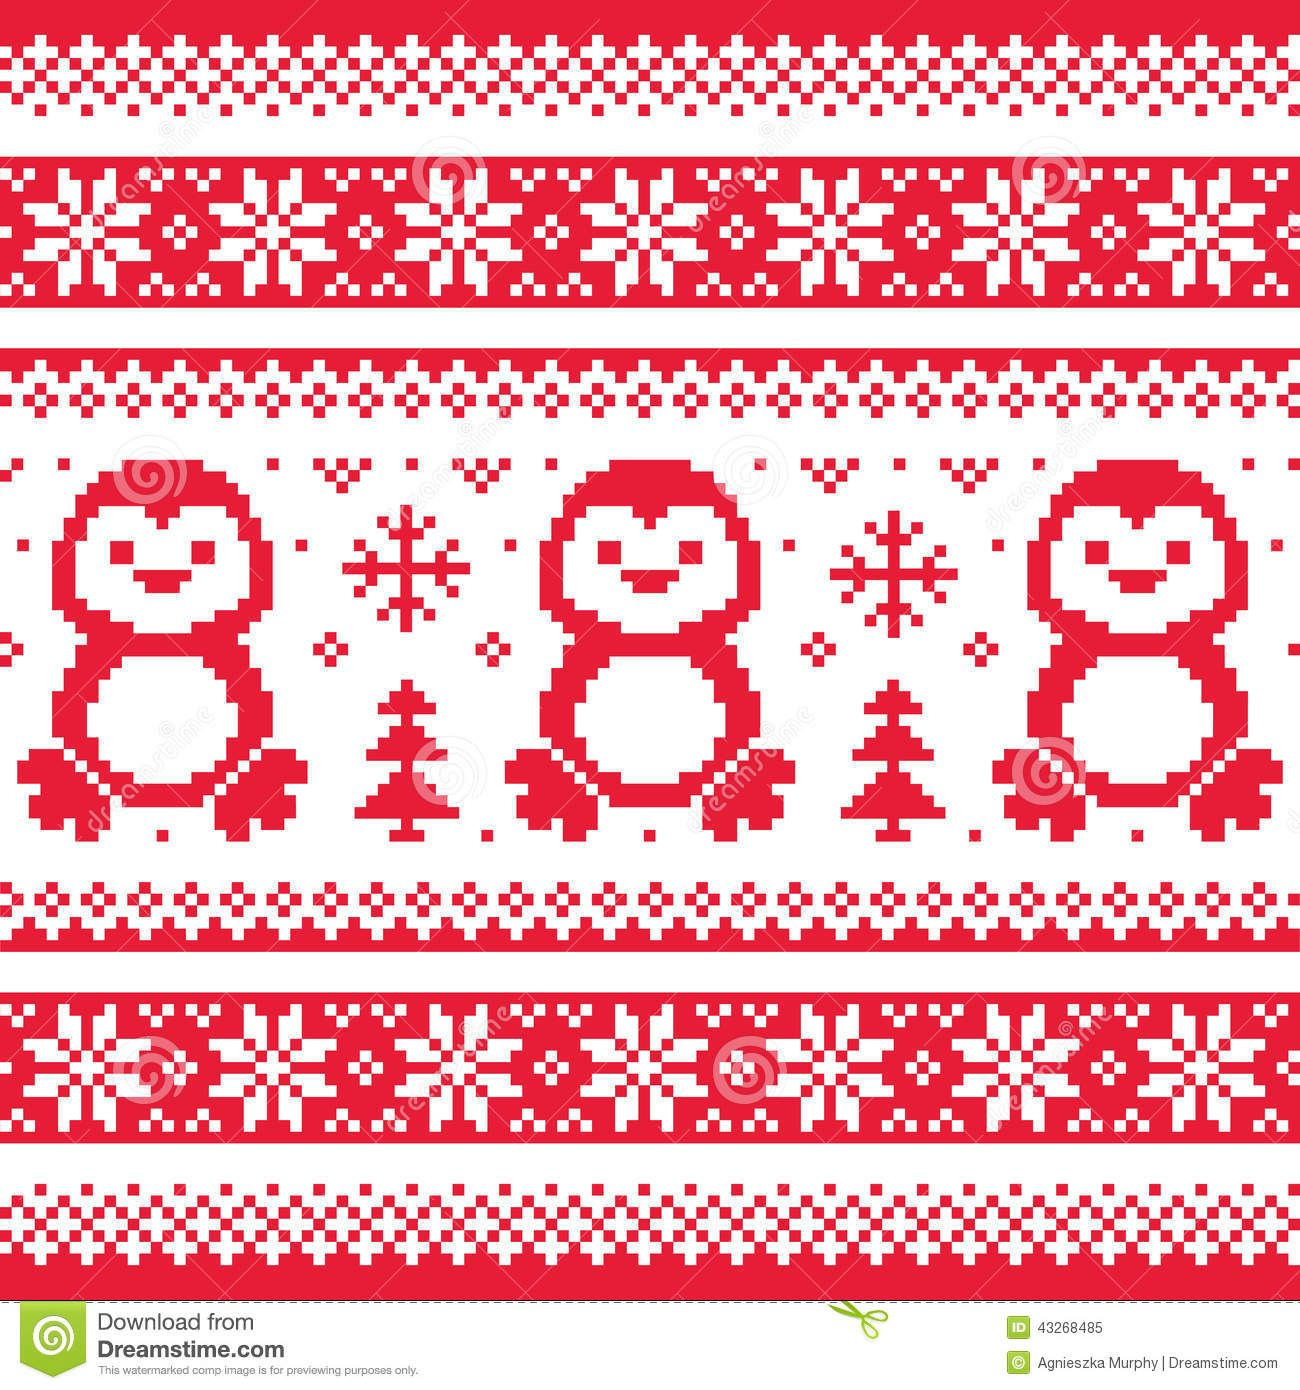 Christmas winter knitted pattern with penguins scandinavian christmas winter knitted pattern with penguins scandinavian sweater style download from over 50 bankloansurffo Images